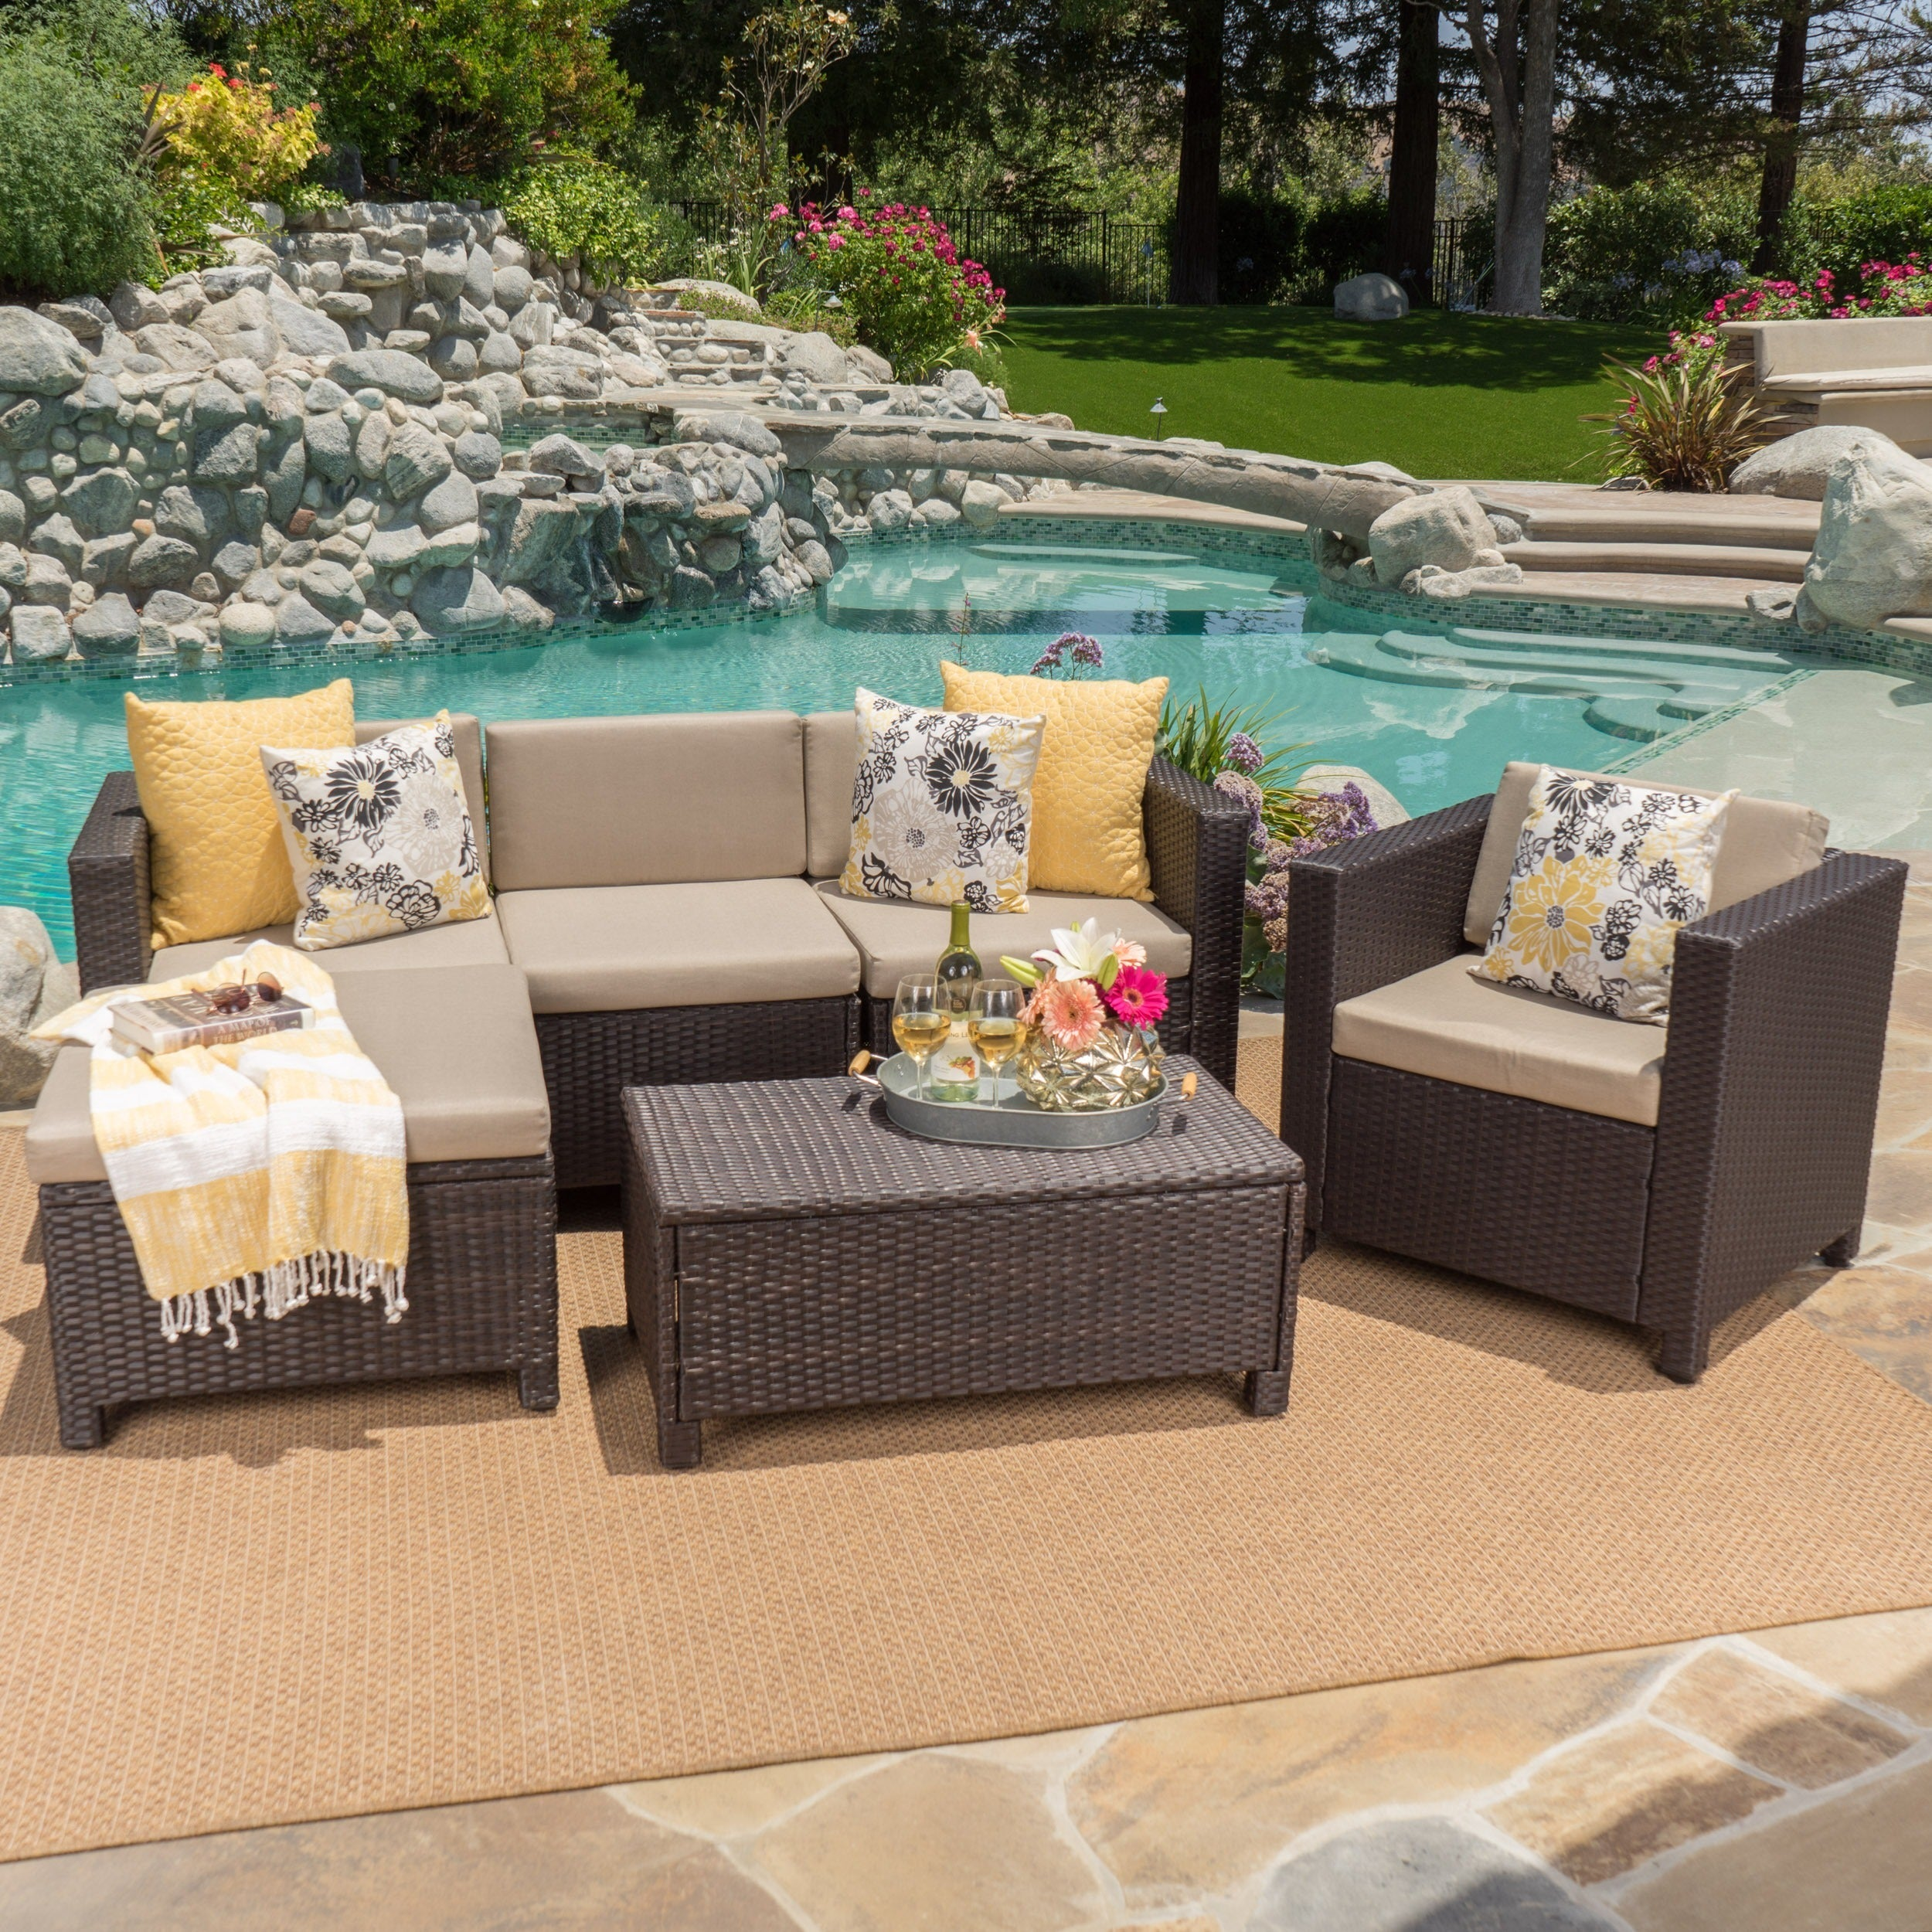 patio veracruz cushions furniture outdoor luxury sofa new com of gray concept sectional bomelconsult